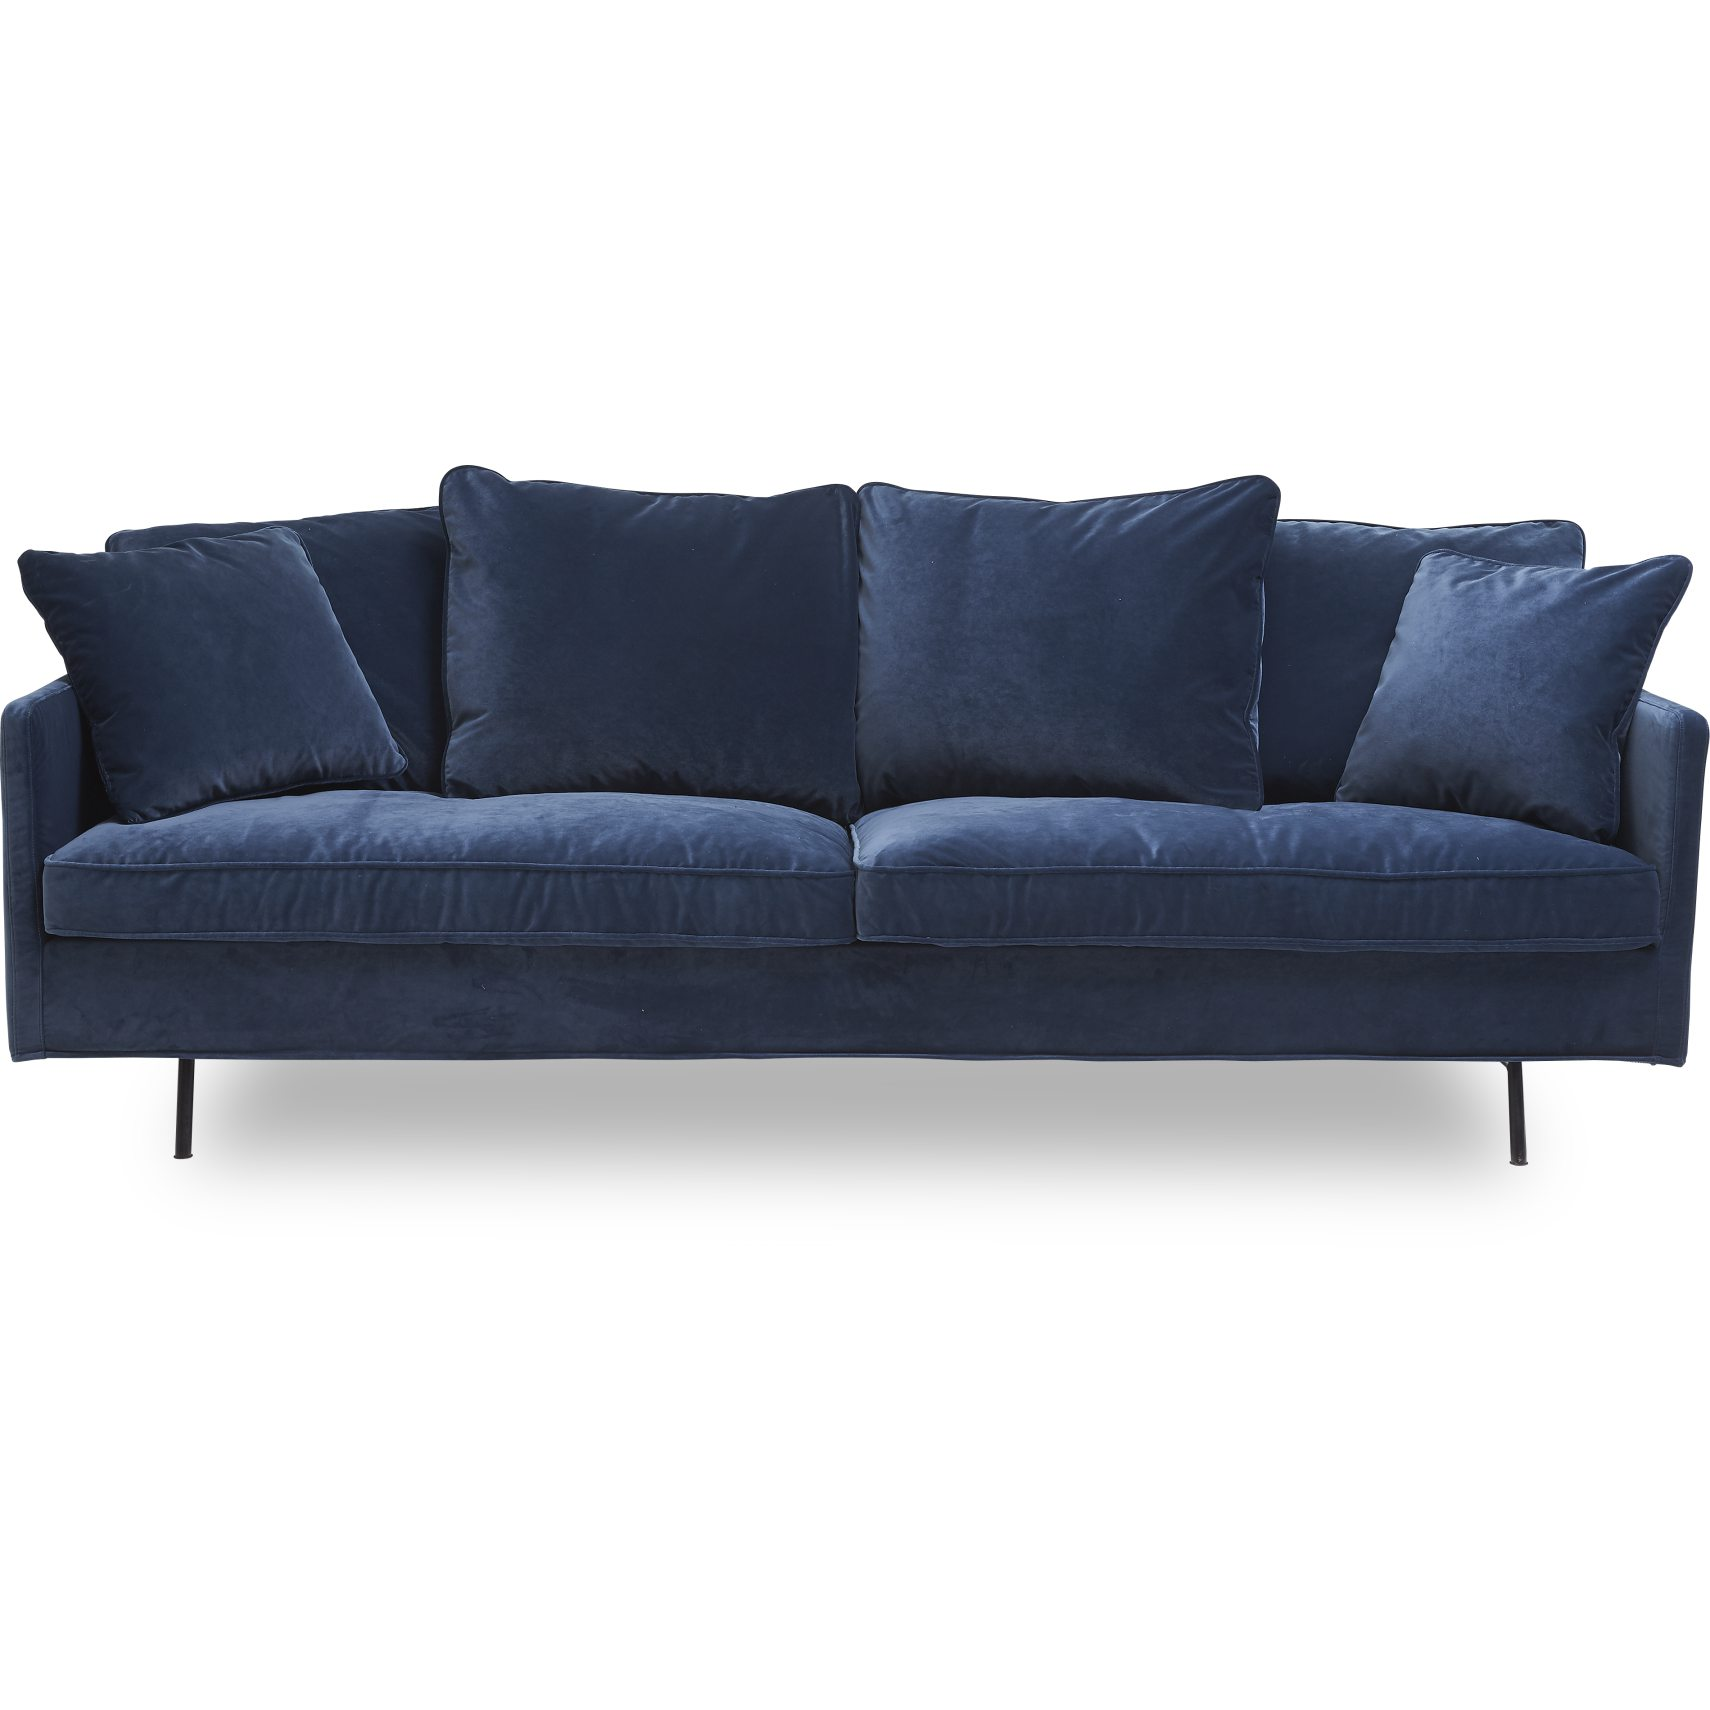 Julia lux 3 pers xl sofa 10399 2 dkk tilbud for 3 on a couch